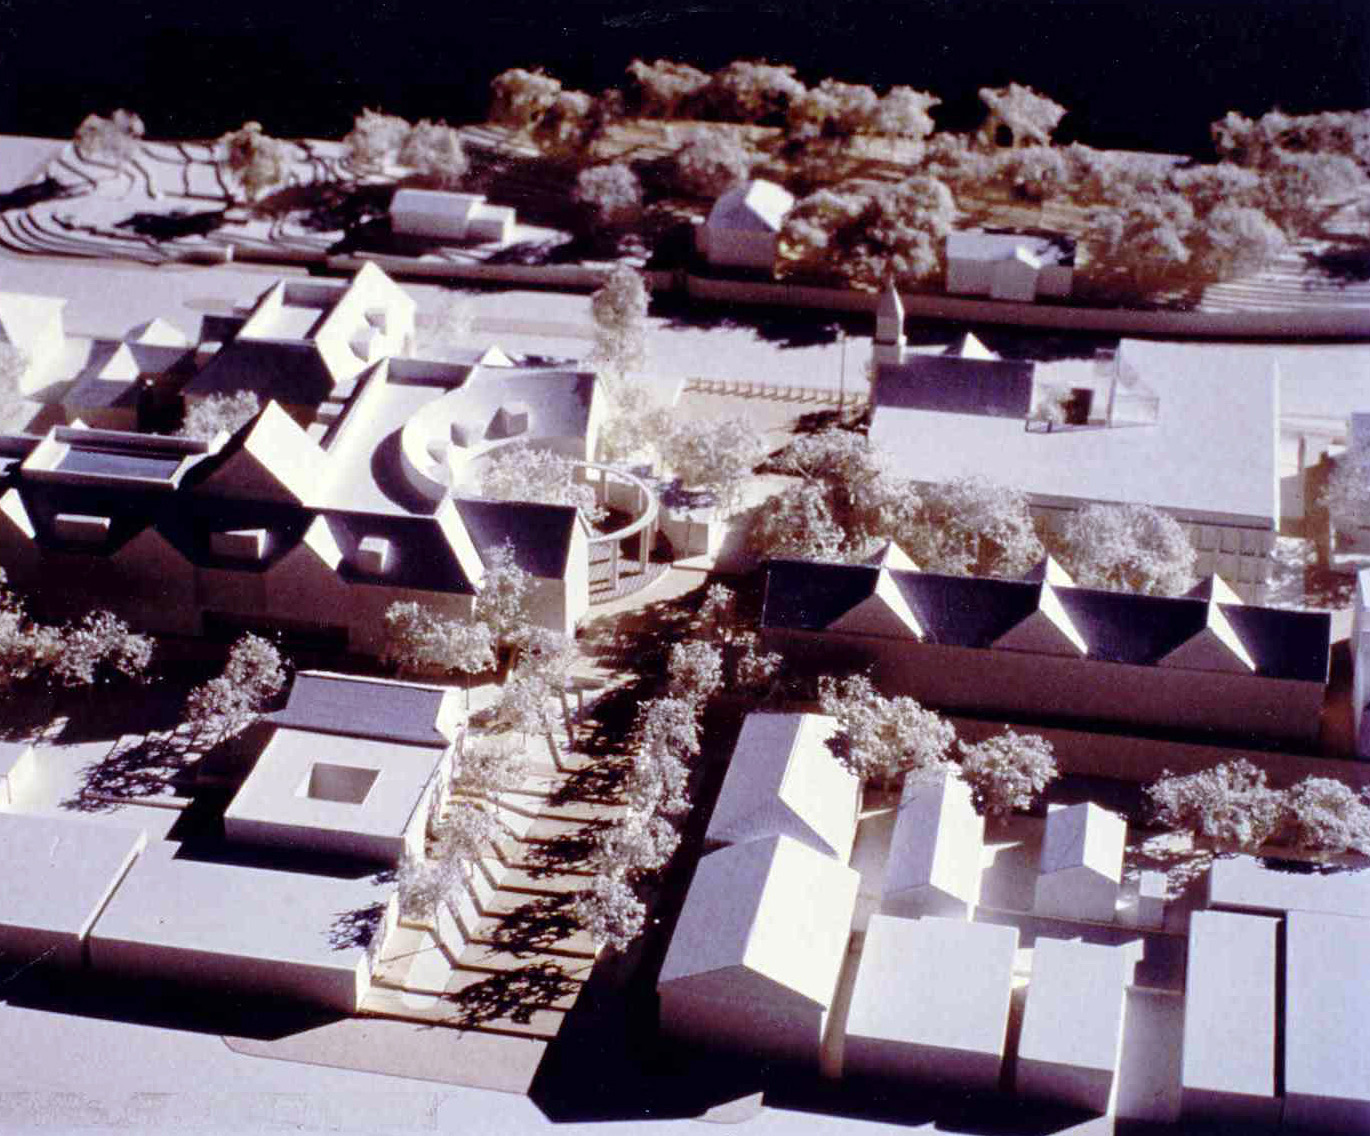 NOVATO CIVIC CENTER DESIGN COMPETITION - AD Architects with Donald Reay, FAIA1st Place Award– Mixed use development creating new downtown in the City of Novato including a Hotel - Conference Center and preservation of a historic church.